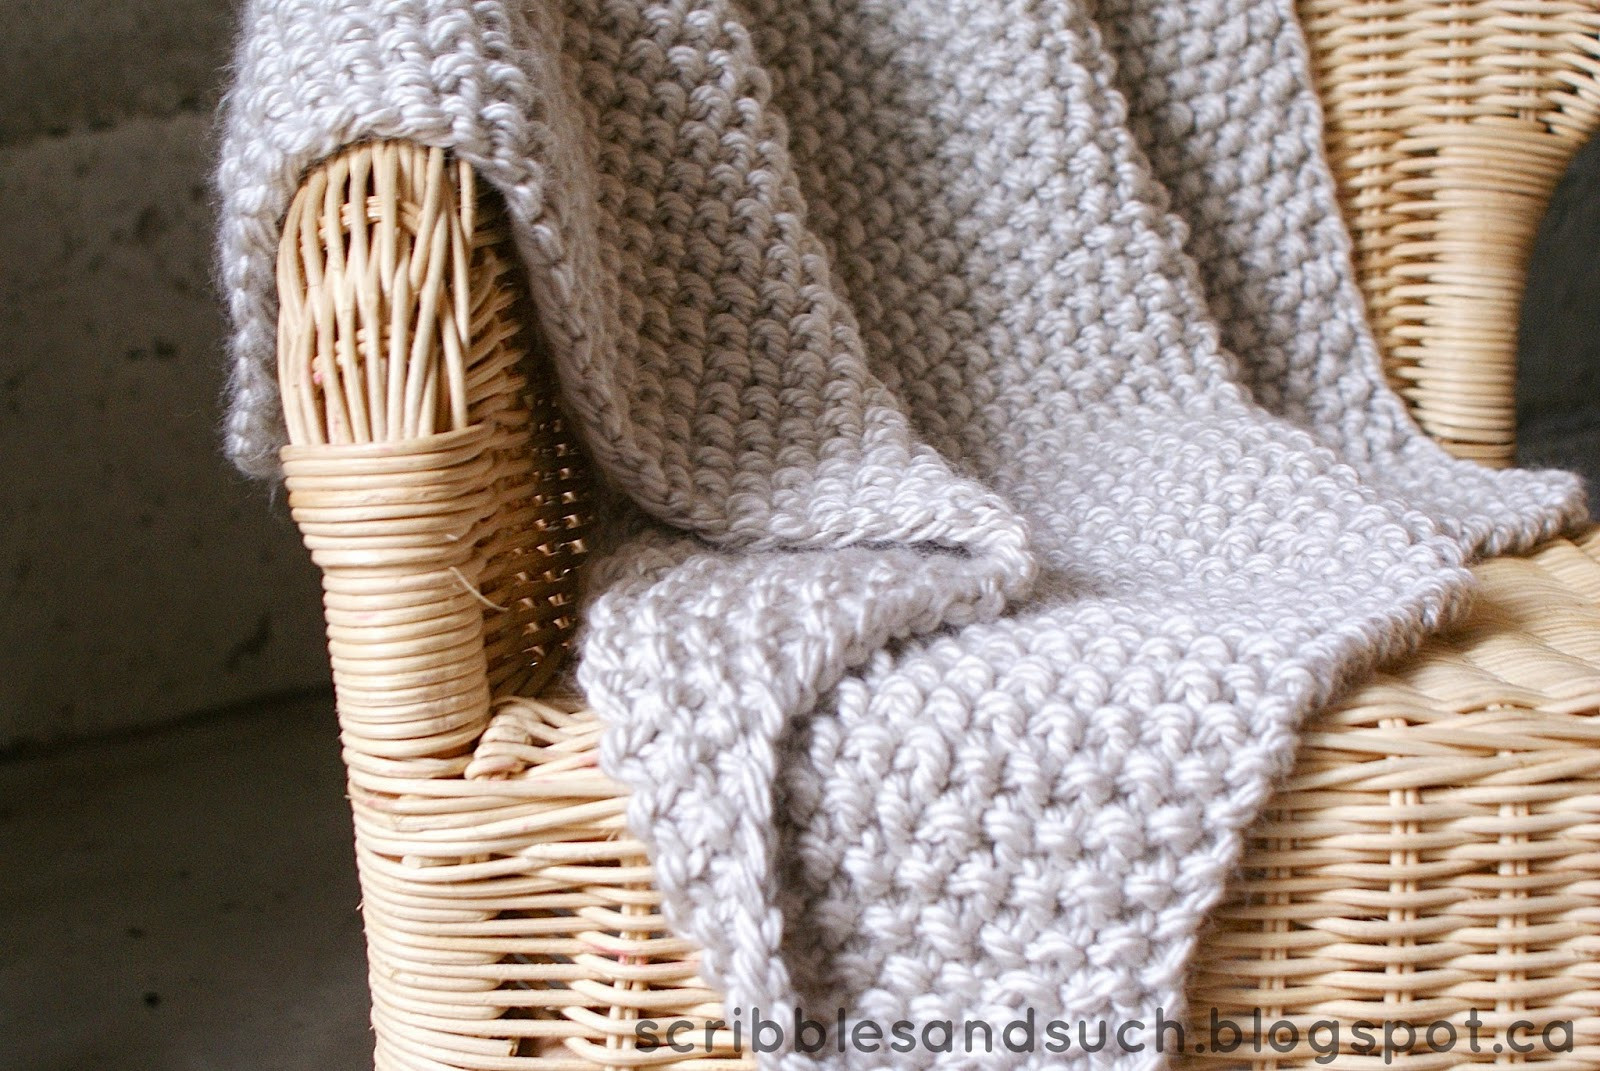 Chunky Knit Baby Blanket Best Of Scribbles & Such Chunky Knitted Baby Blanket Of Gorgeous 41 Pictures Chunky Knit Baby Blanket